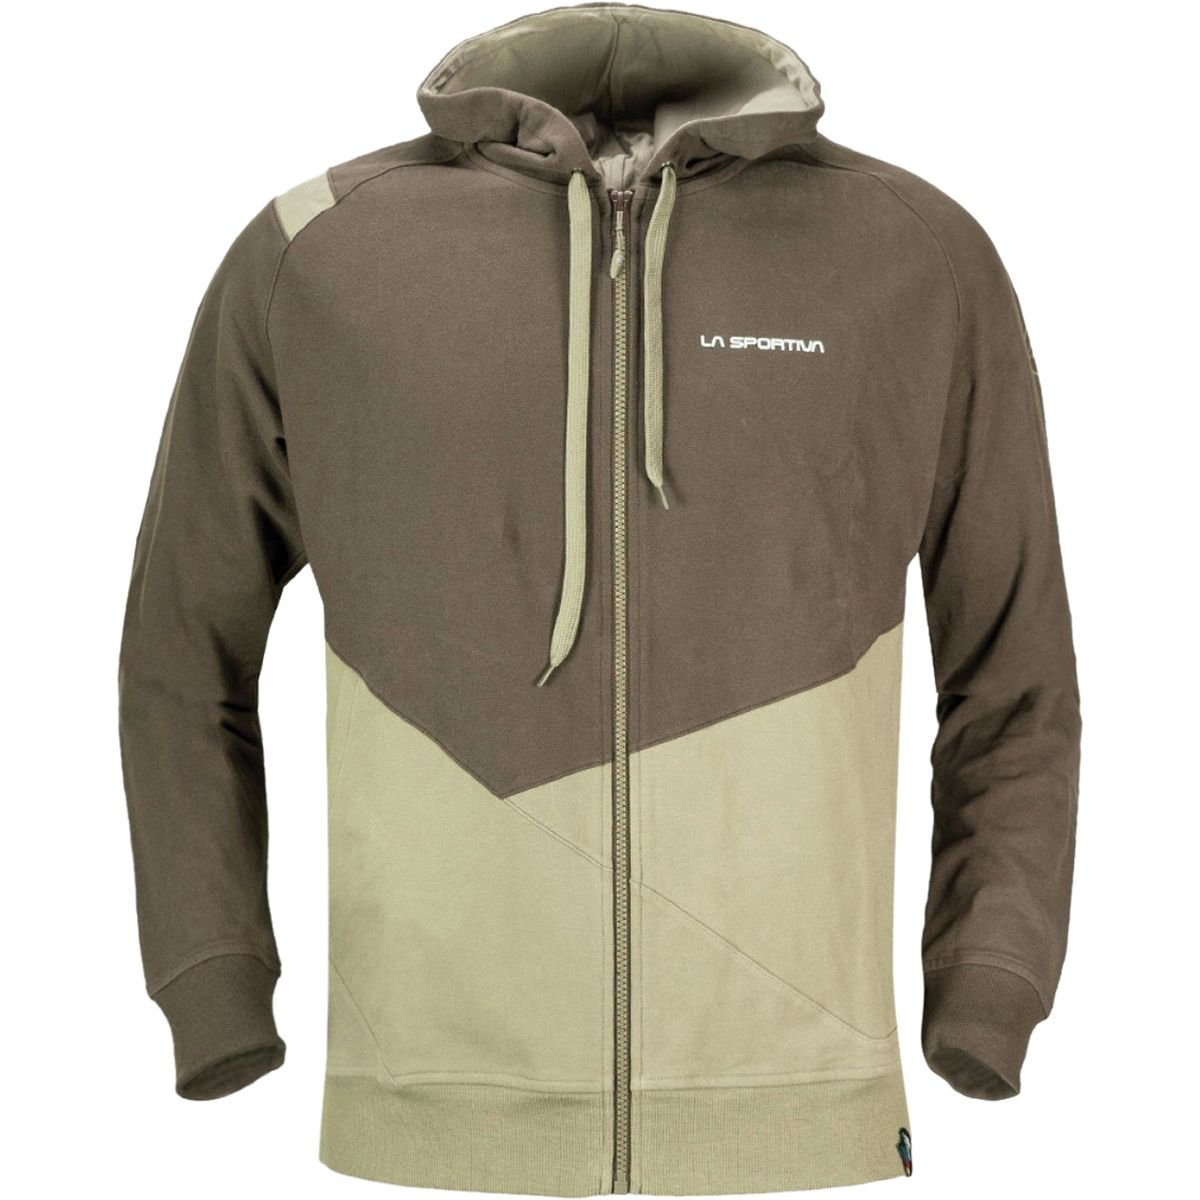 La Sportiva Men' s Rocklands Rock Climbing Hoody Sweatshirt for Men H38-900900-XL